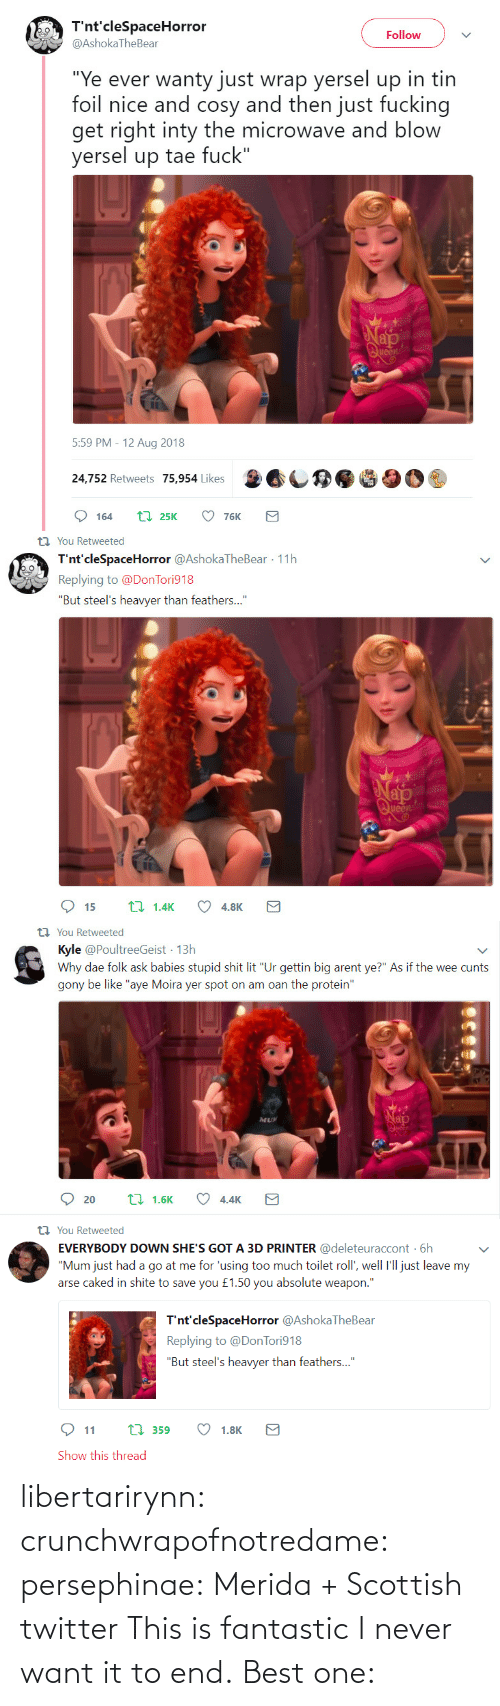 Best: libertarirynn:  crunchwrapofnotredame:  persephinae: Merida + Scottish twitter  This is fantastic I never want it to end.   Best one: